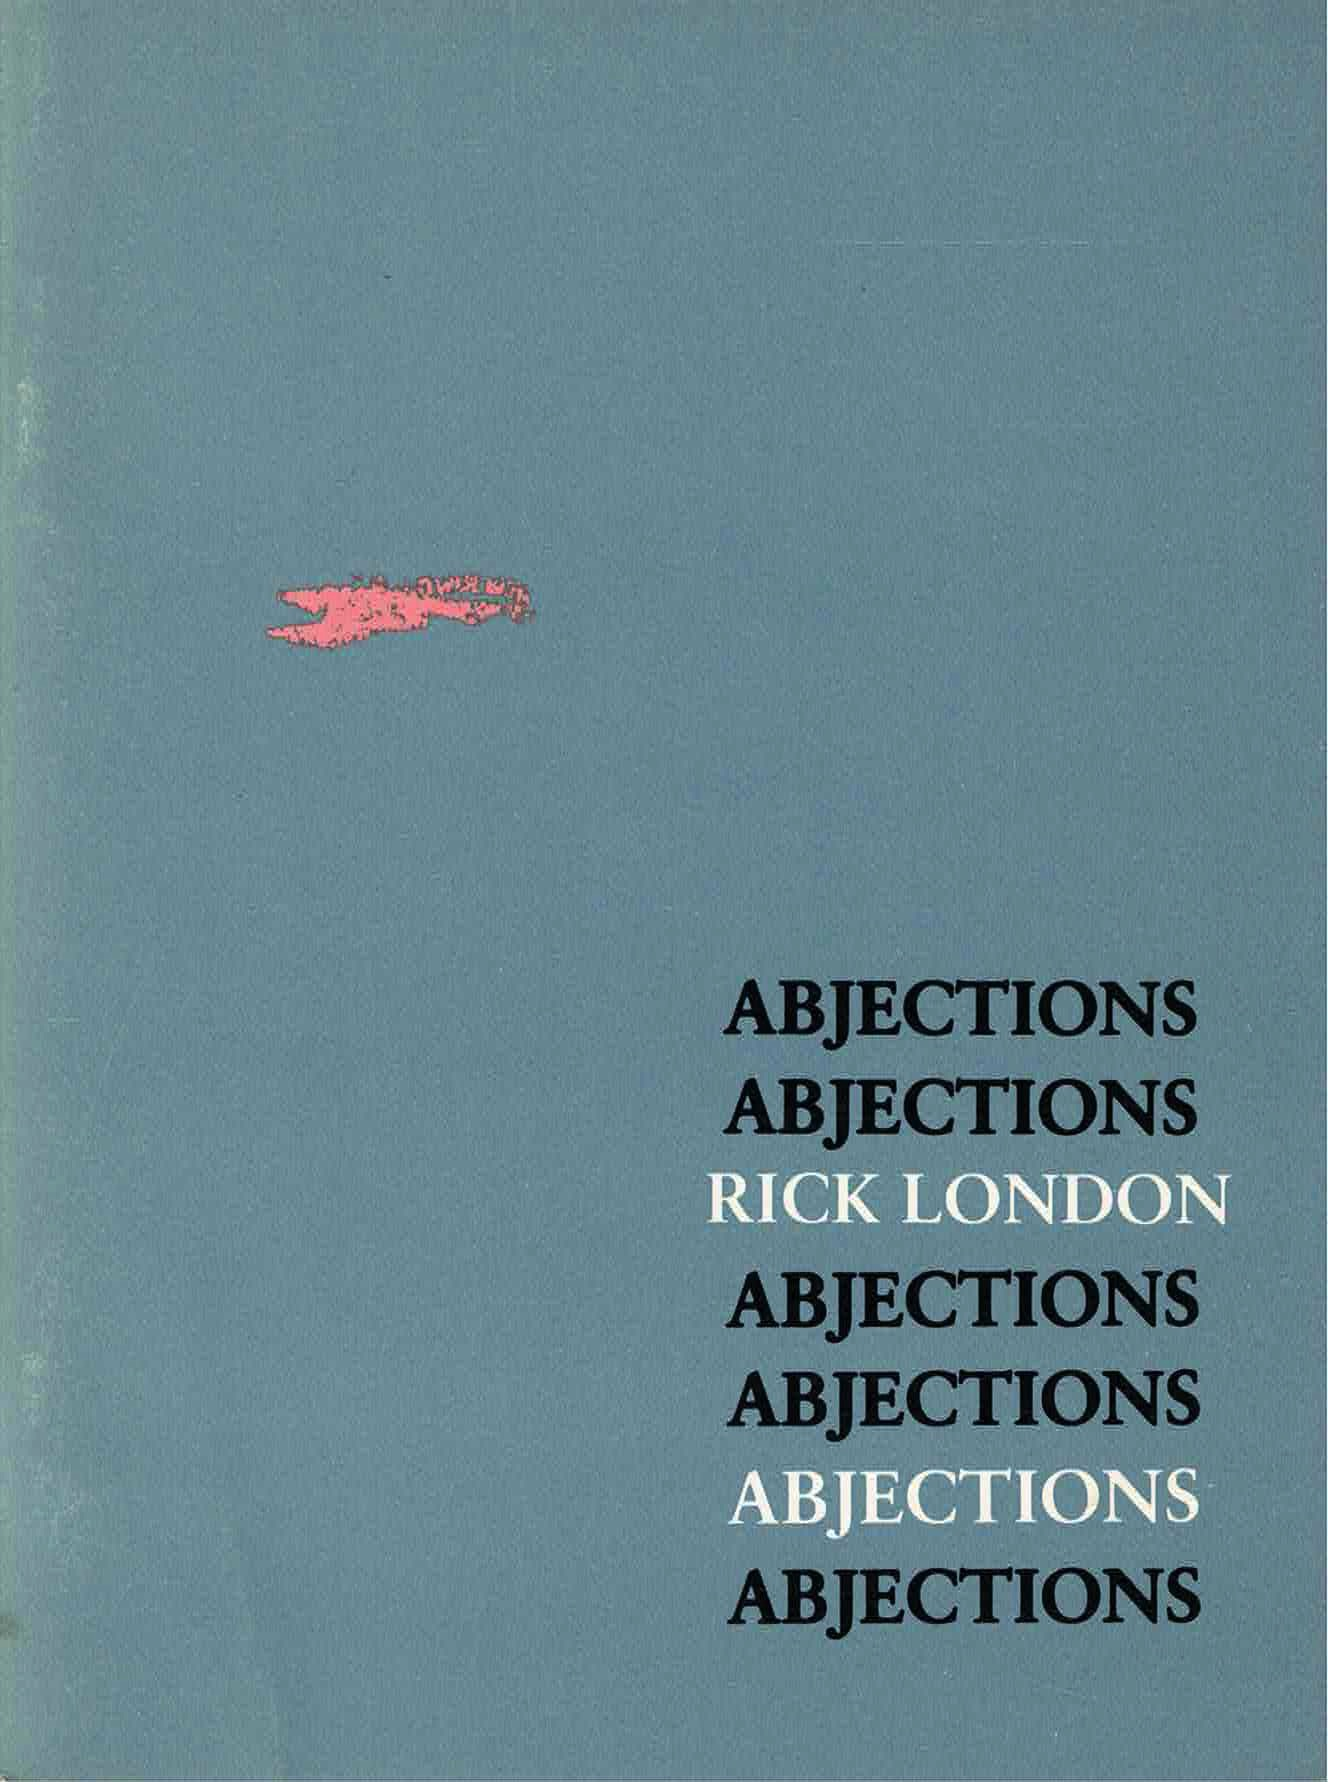 cover of Abjections by rick london, light grey-blue background with a smudge of light pink on left side slightly above horizontal, title is right justified at the bottom half of page and repeated in a column in black typed text, interrupted by author name in white typed text and the title written once in white text